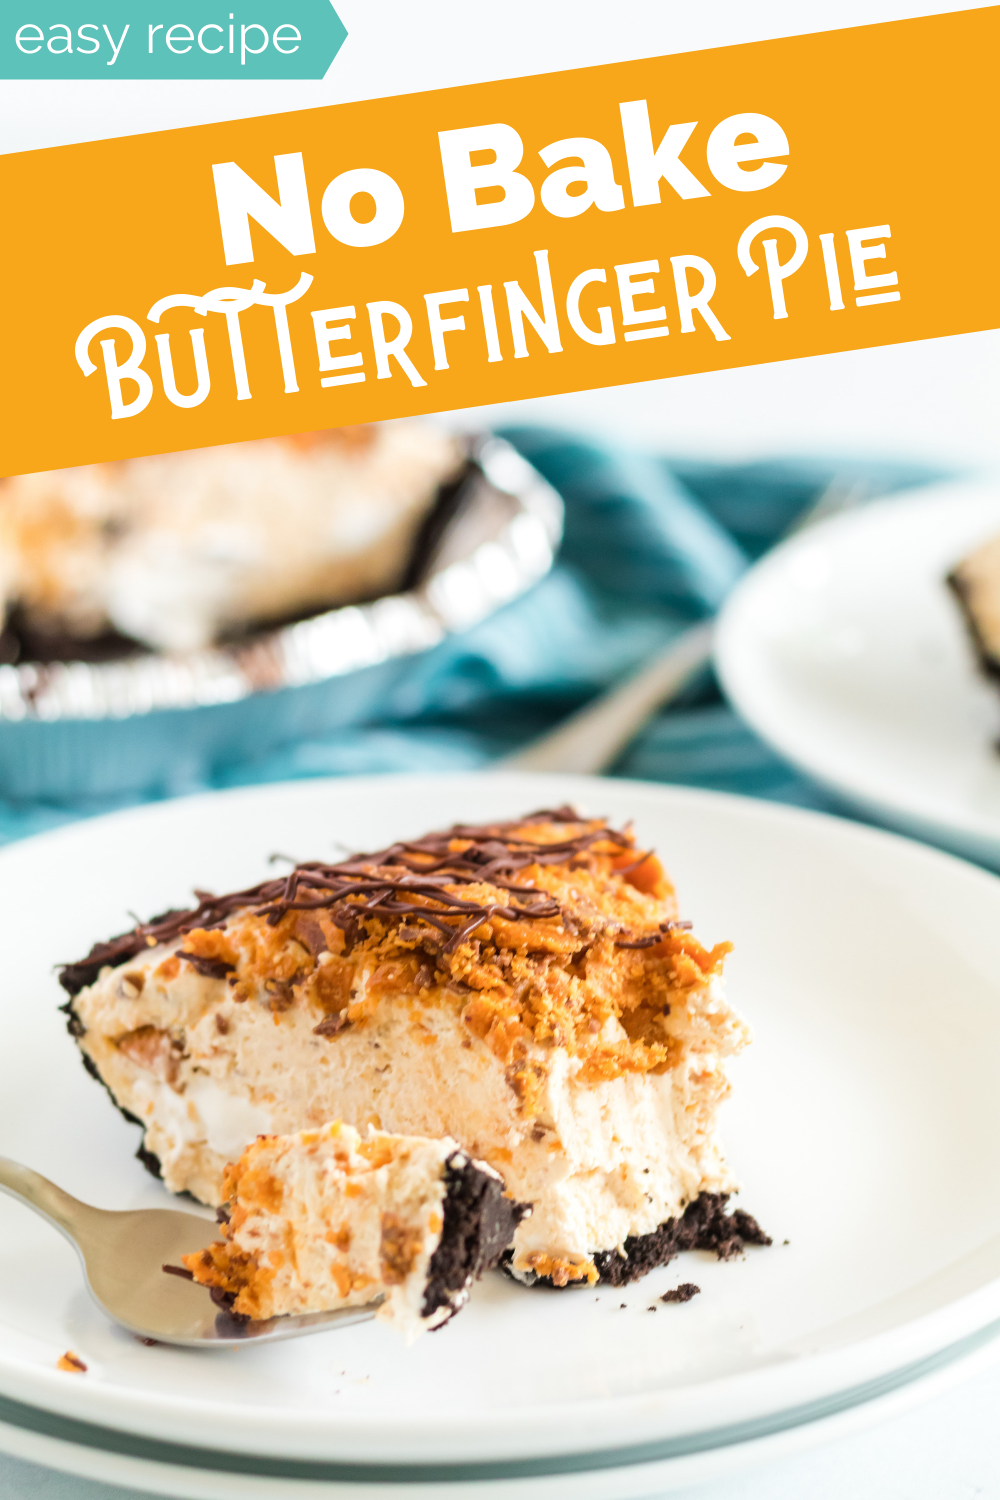 Because there's no oven needed, this creamy No Bake Butterfinger Pie is a great dessert to make with kids – or to eat with them. #familyfreshmeals #butterfinger #pie #nobake via @familyfresh